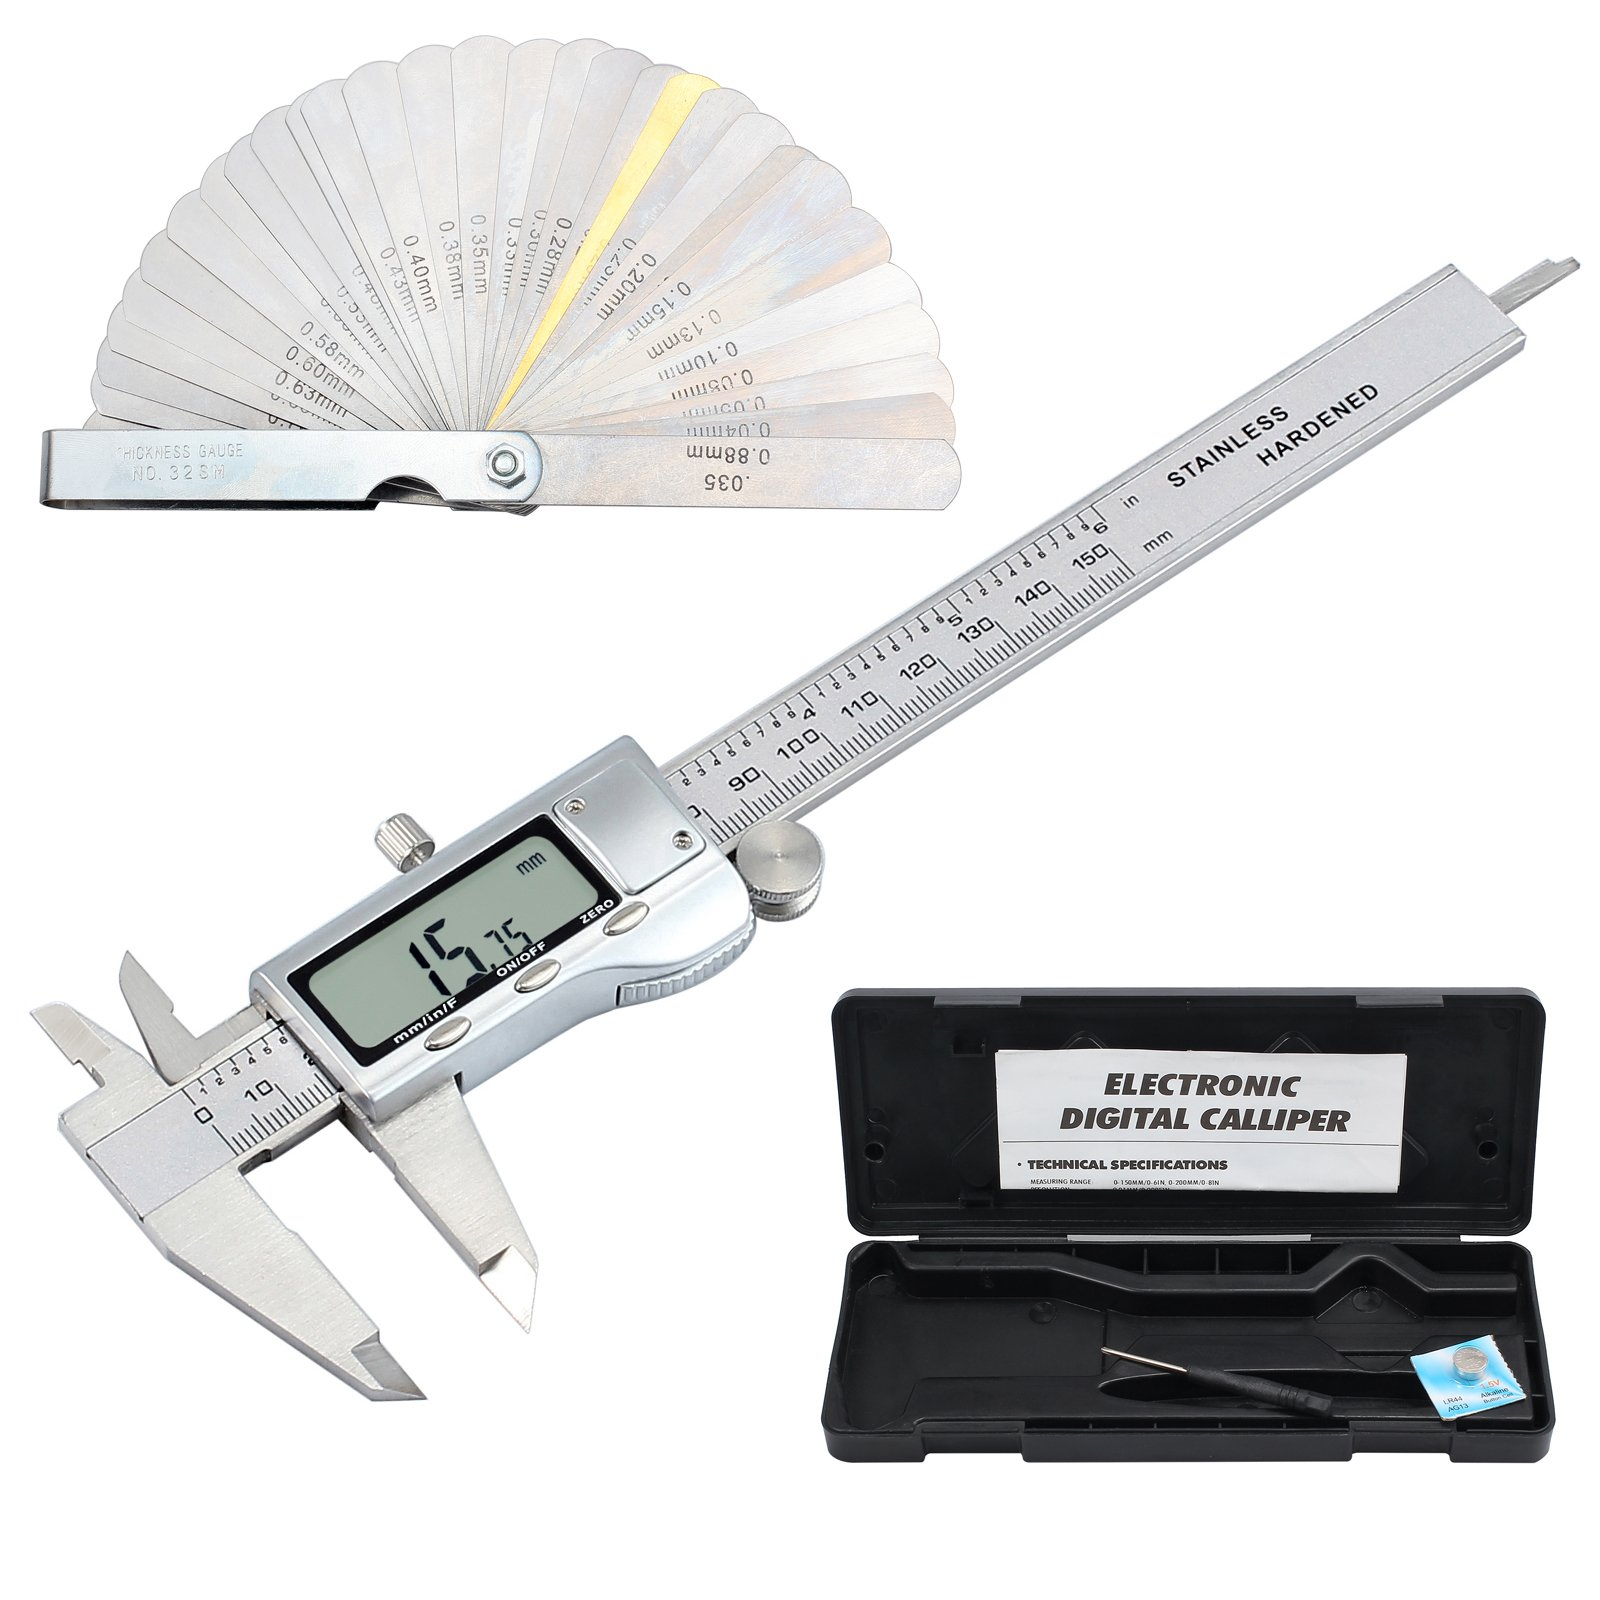 Proster 150mm/6inch Digital Caliper Vernier with 32 Feeler Gauge Stainless Steel Electronic Caliper LCD Fractions/Inch/Metric Measuring Tool for Length Width Depth Inner Diameter Outer Diameter